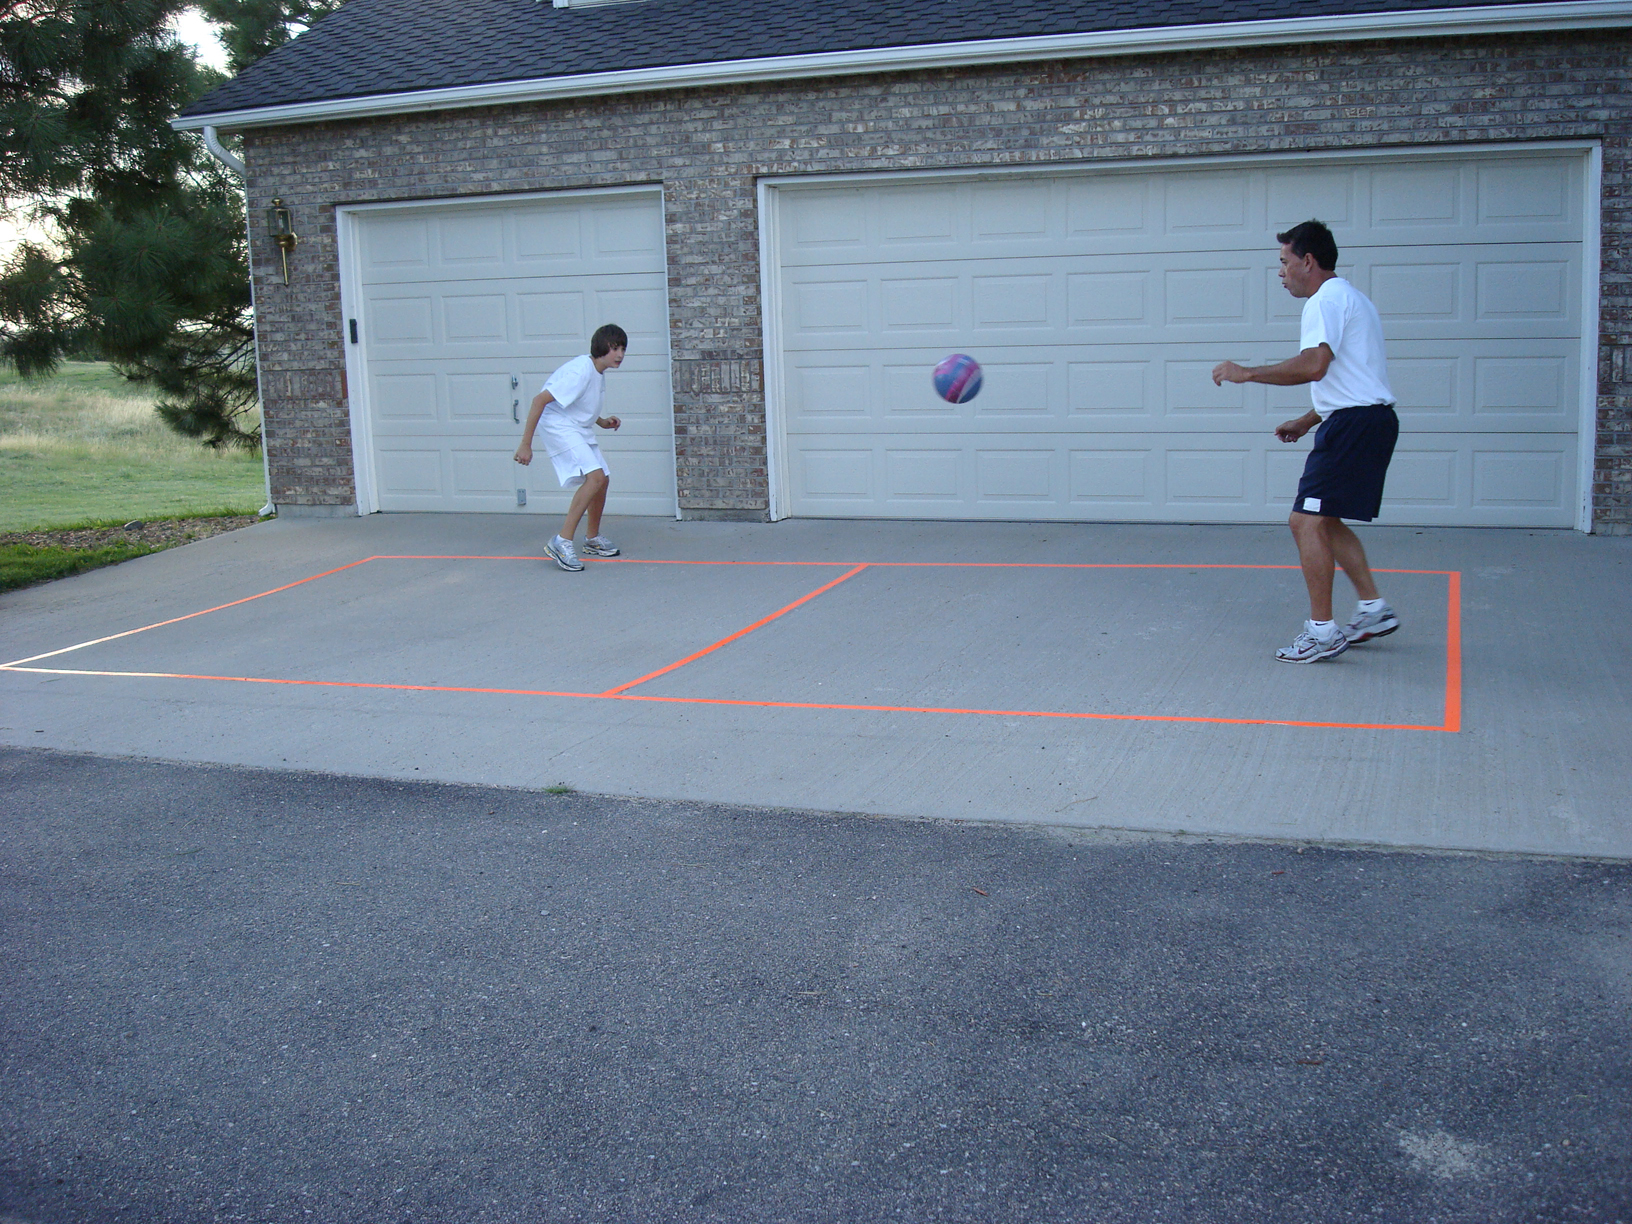 Father and Son Playing in Driveway